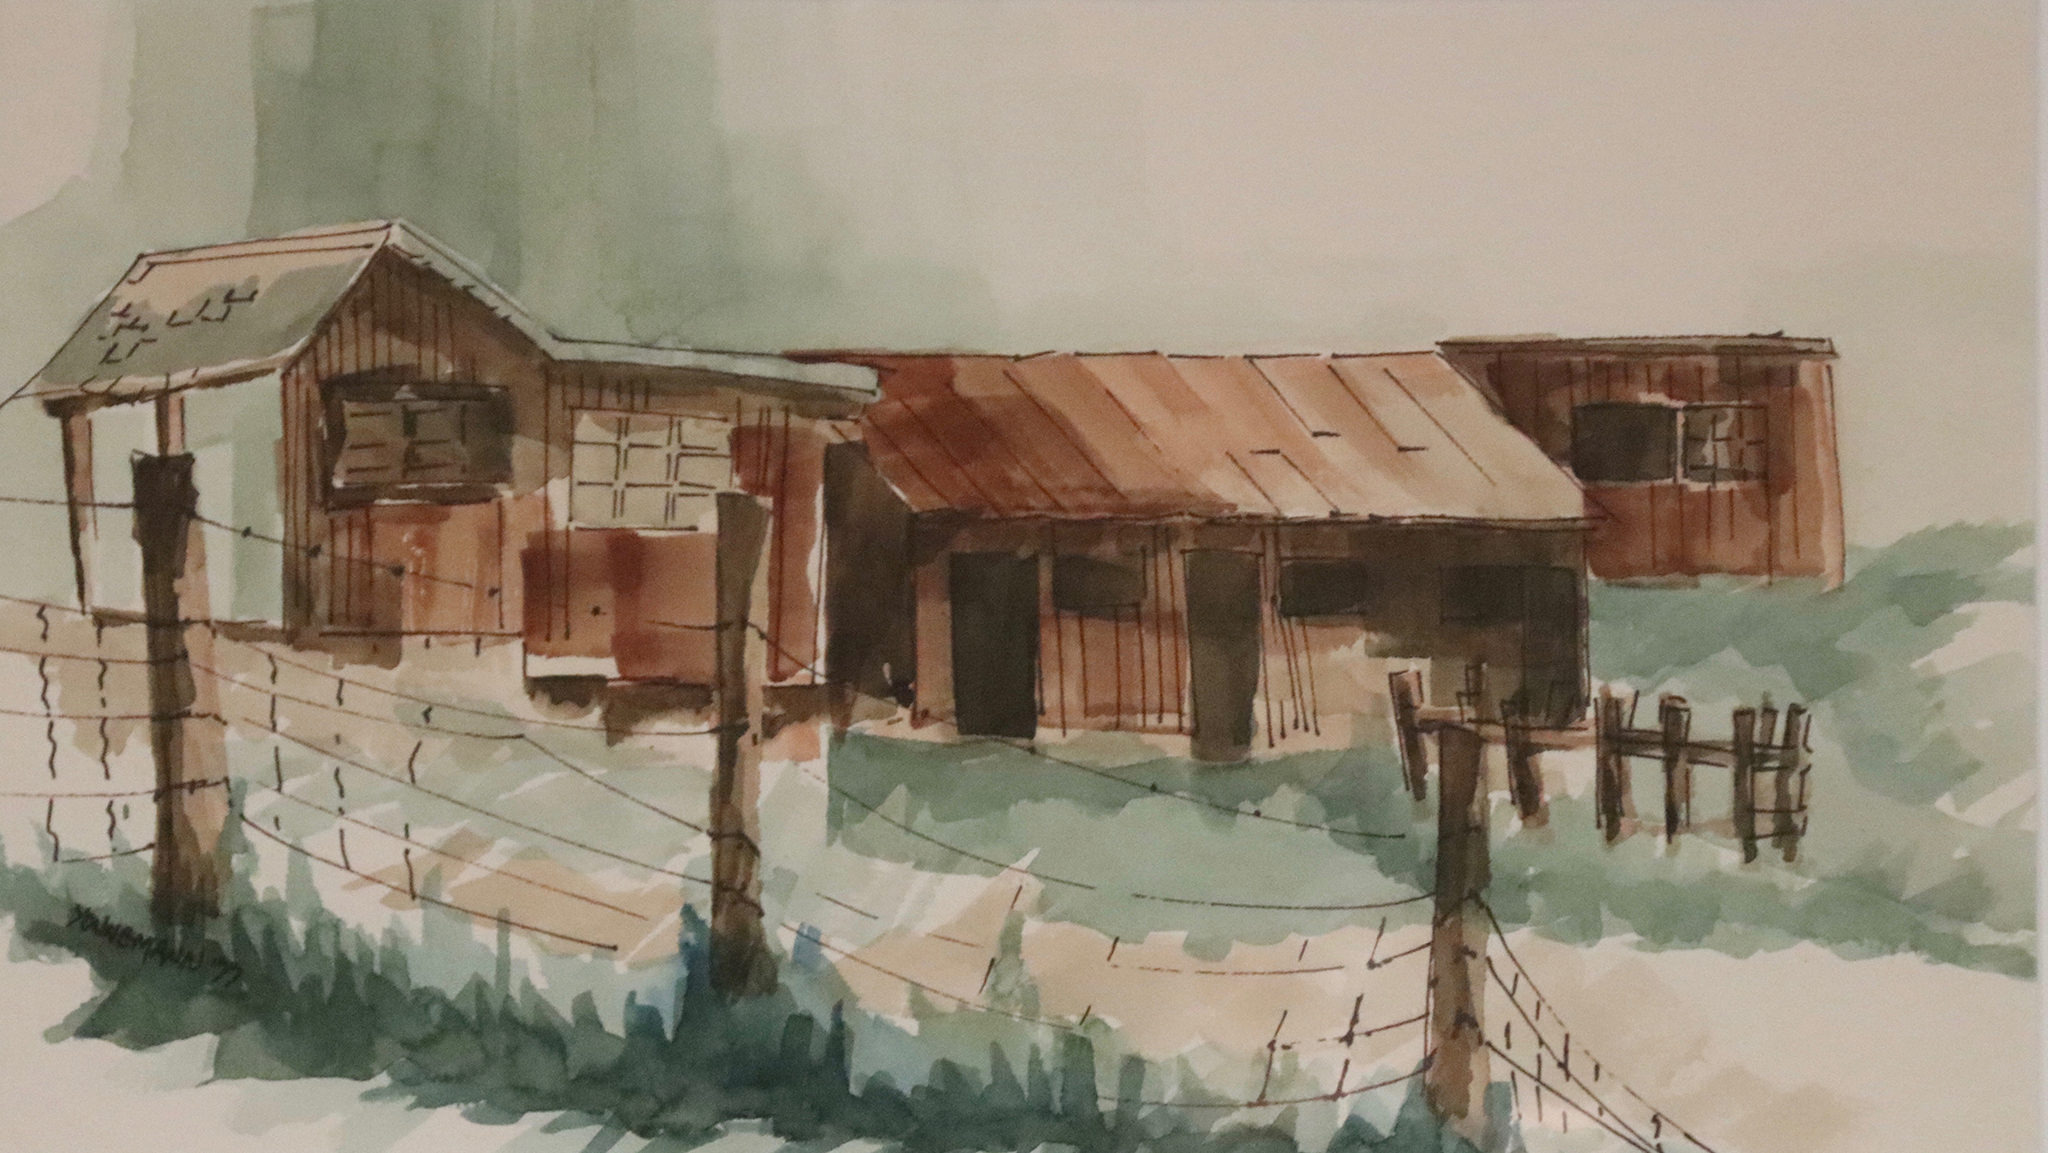 Painting #49 Sheds